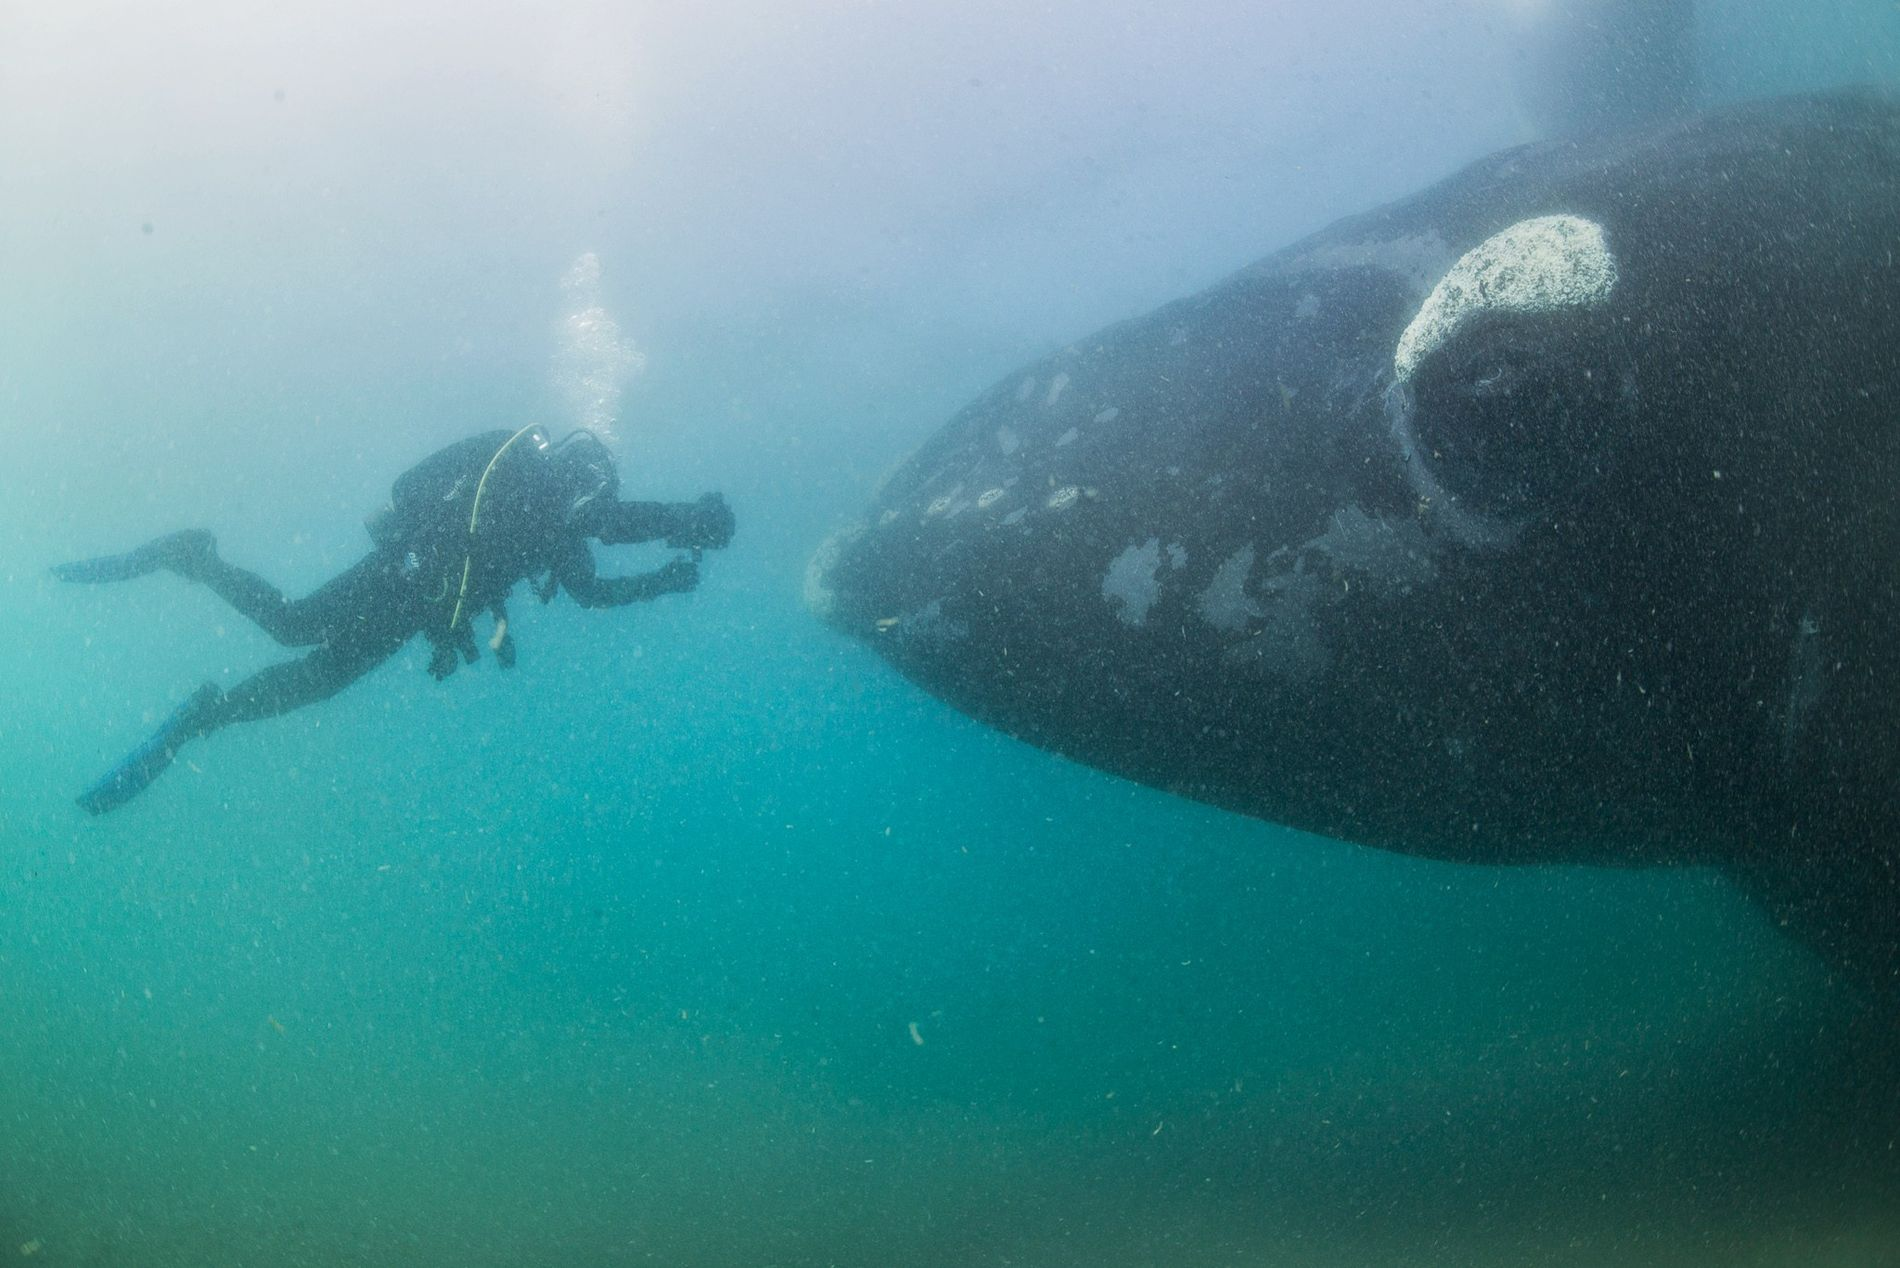 Astonishing Images of Southern Right Whales